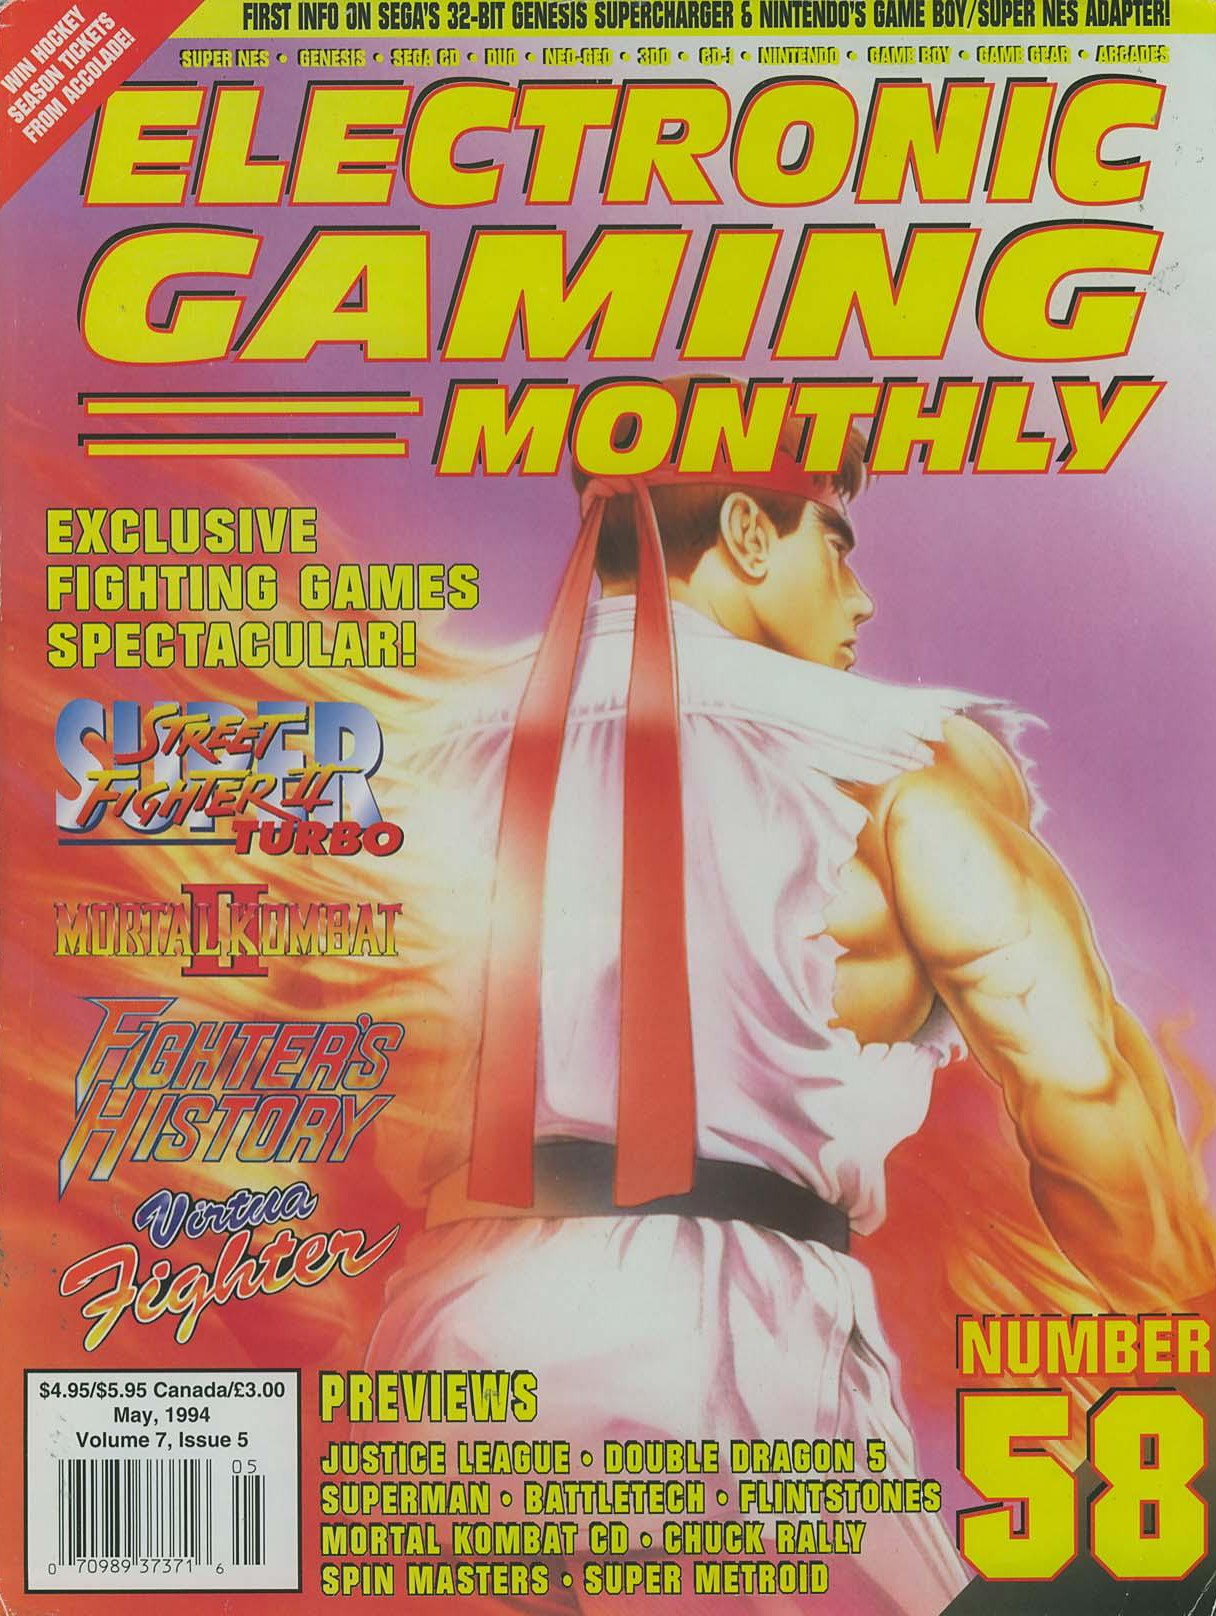 No one ever saw EGM turning heel on Street Fighter